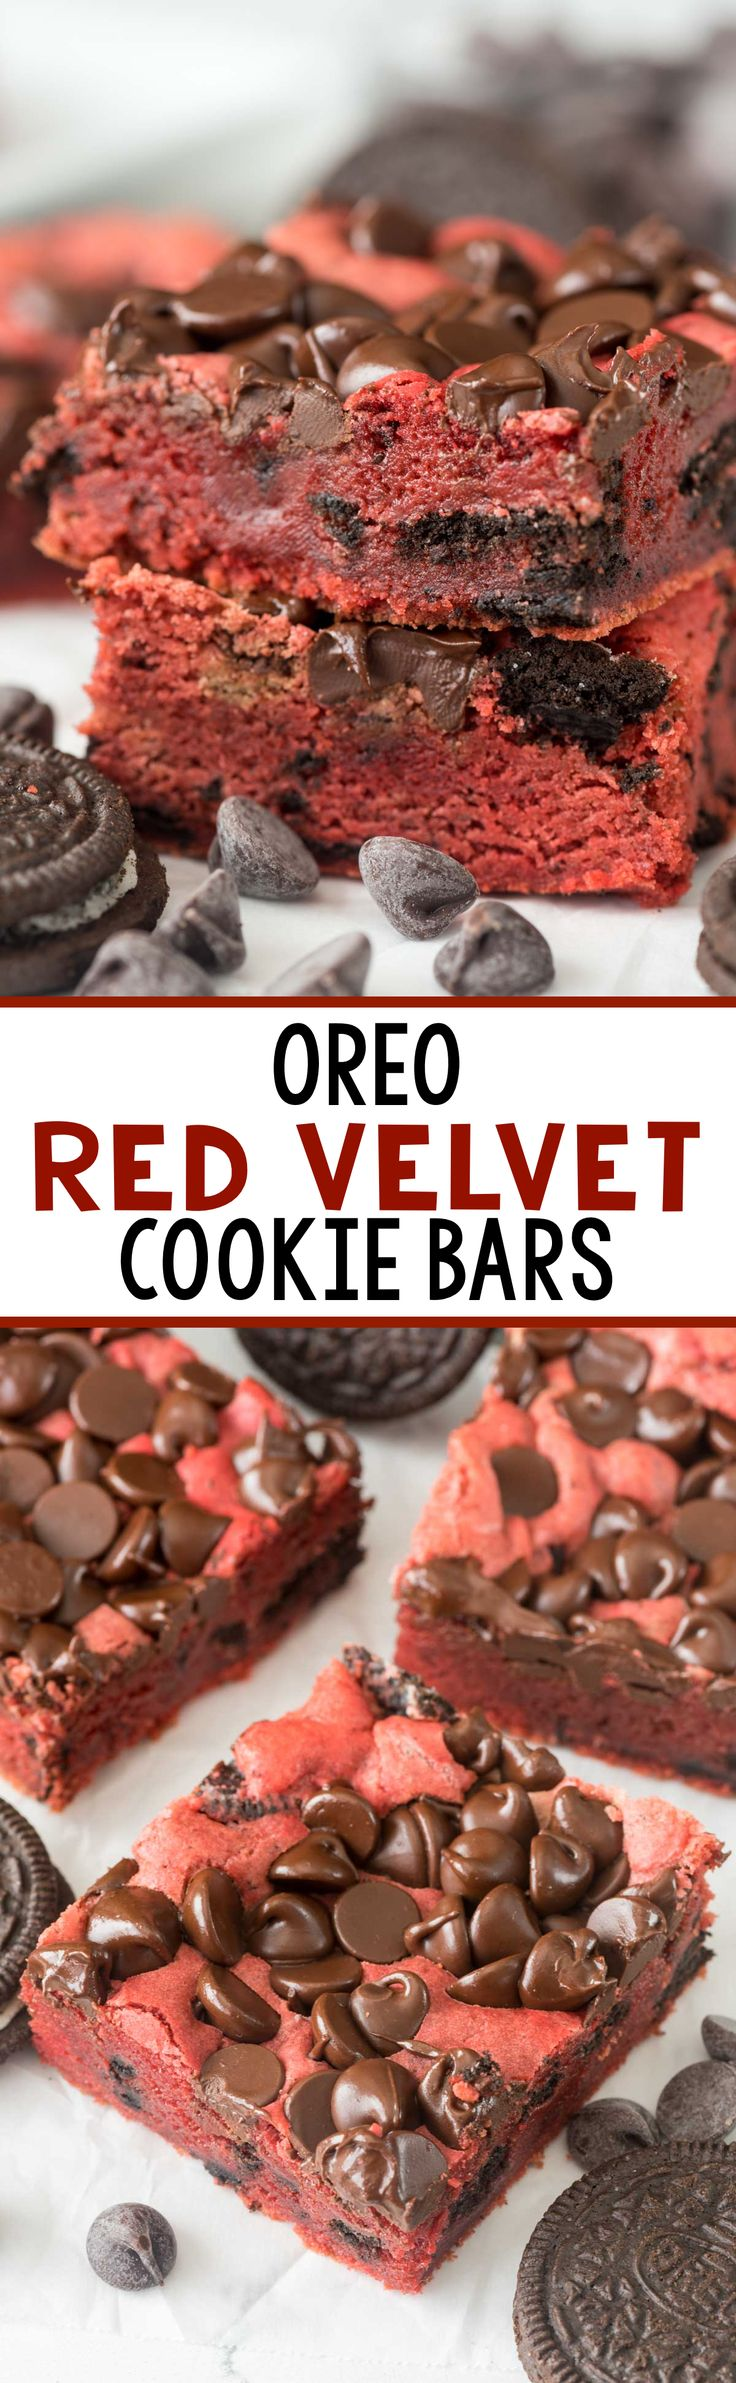 Oreo Red Velvet Cookie Bars - this easy blondie recipe is full of red velvet flavor AND Oreos and chocolate!